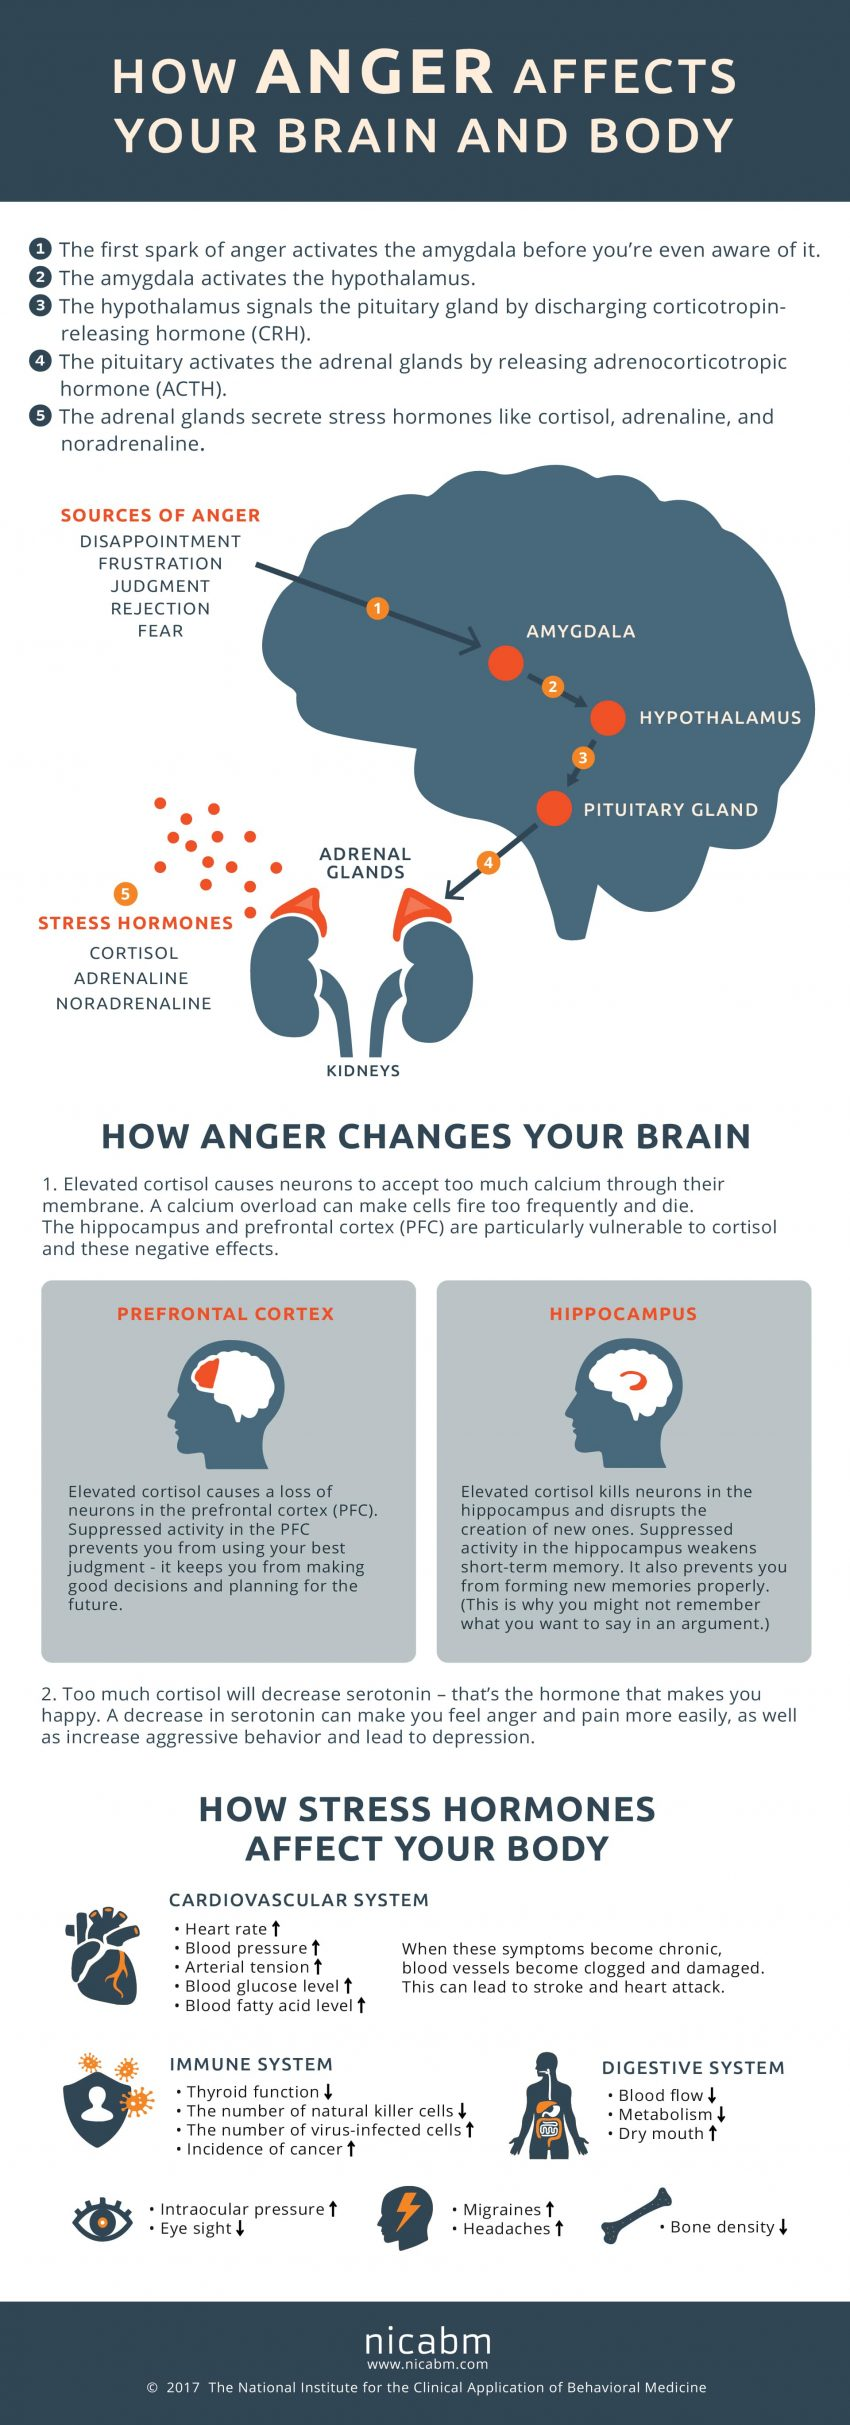 how-anger-affects-the-brain-and-body-infographic